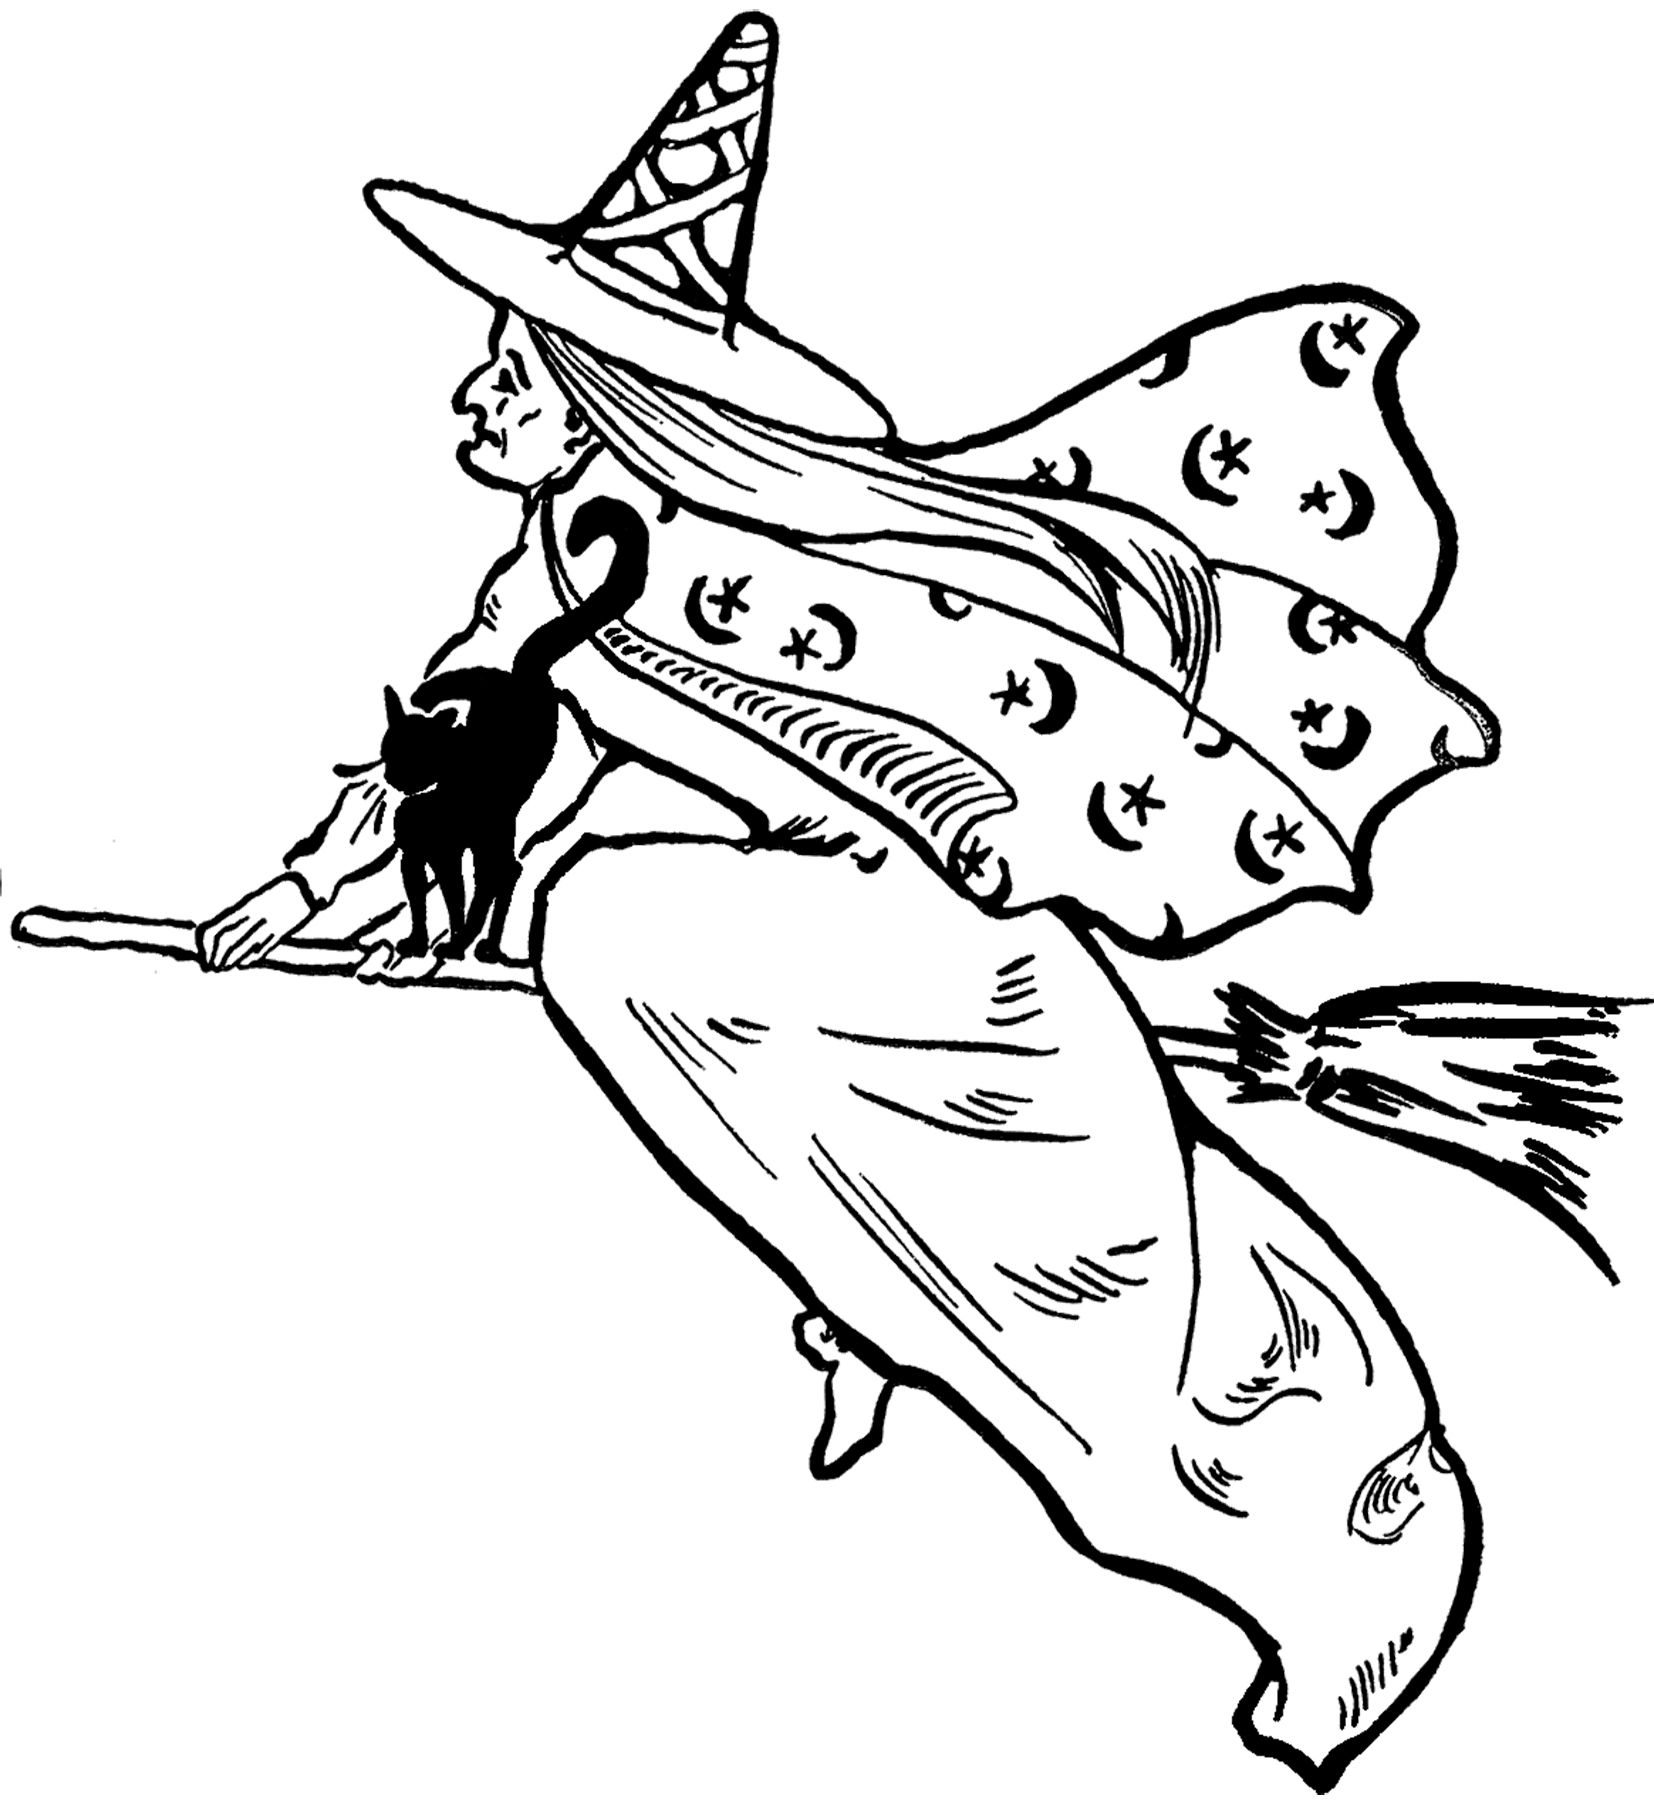 Free Wizard Clipart Black And White, Download Free Clip Art.